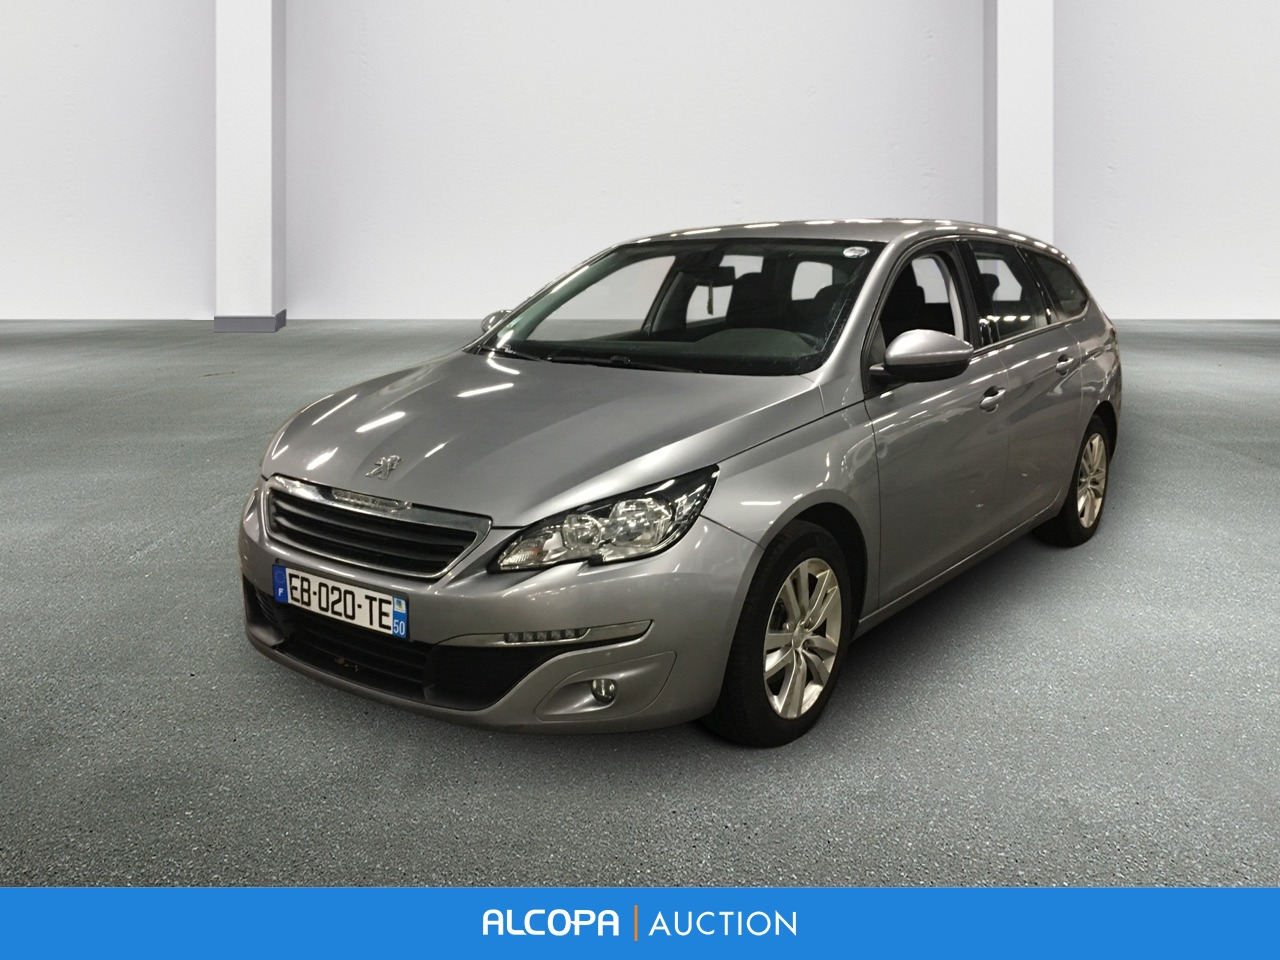 peugeot 308 sw business 308 sw 1 6 bluehdi 100ch s s bvm5 active business alcopa auction. Black Bedroom Furniture Sets. Home Design Ideas